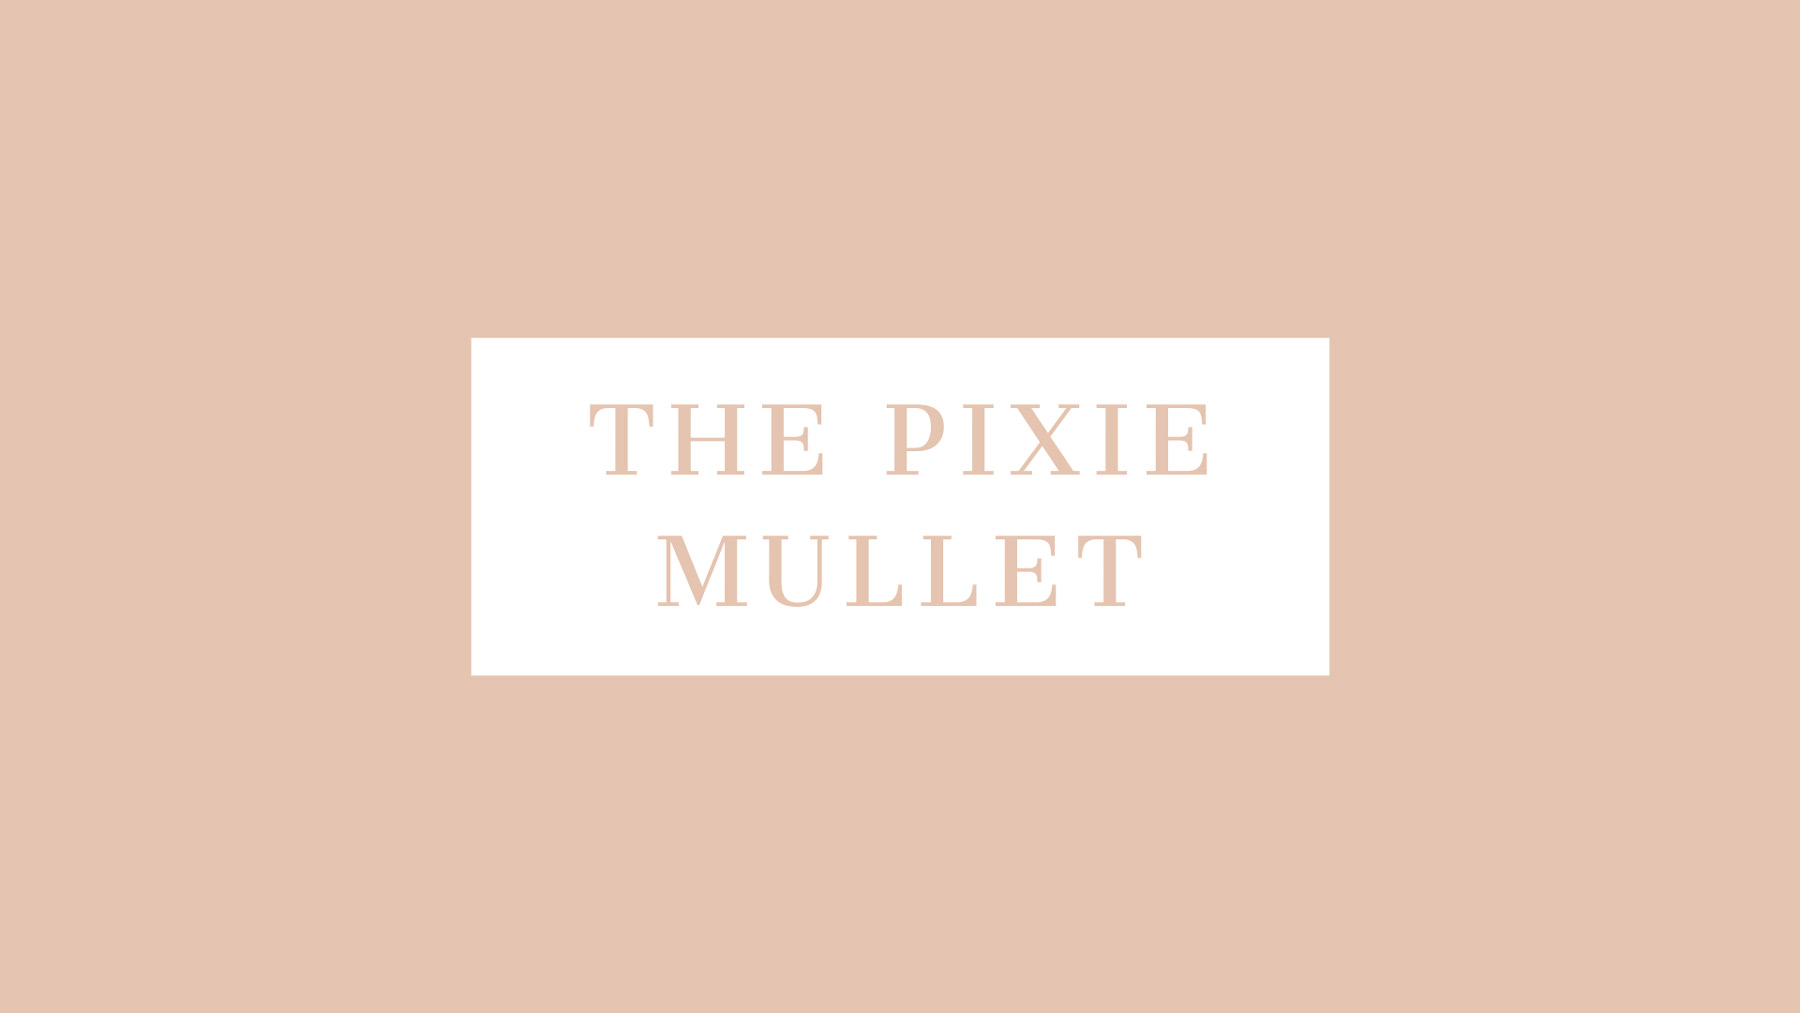 The Pixie Mullet